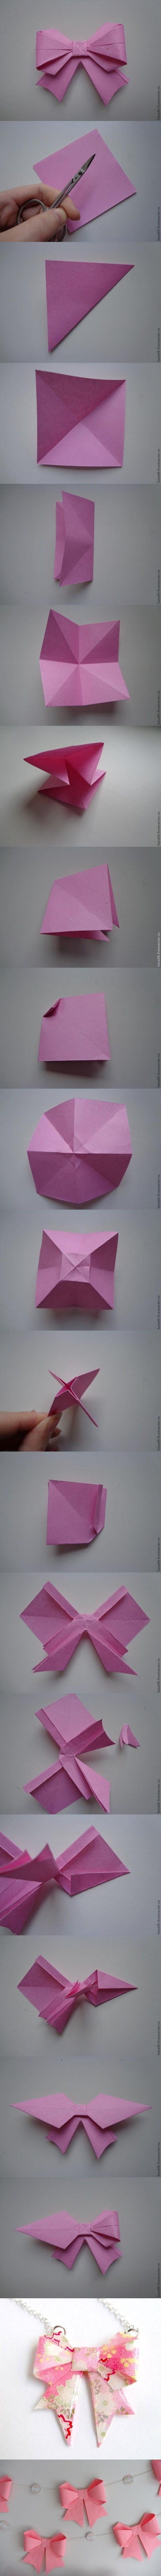 #diy #crafts #paperbow DIY Origami-Paper-Bow 3